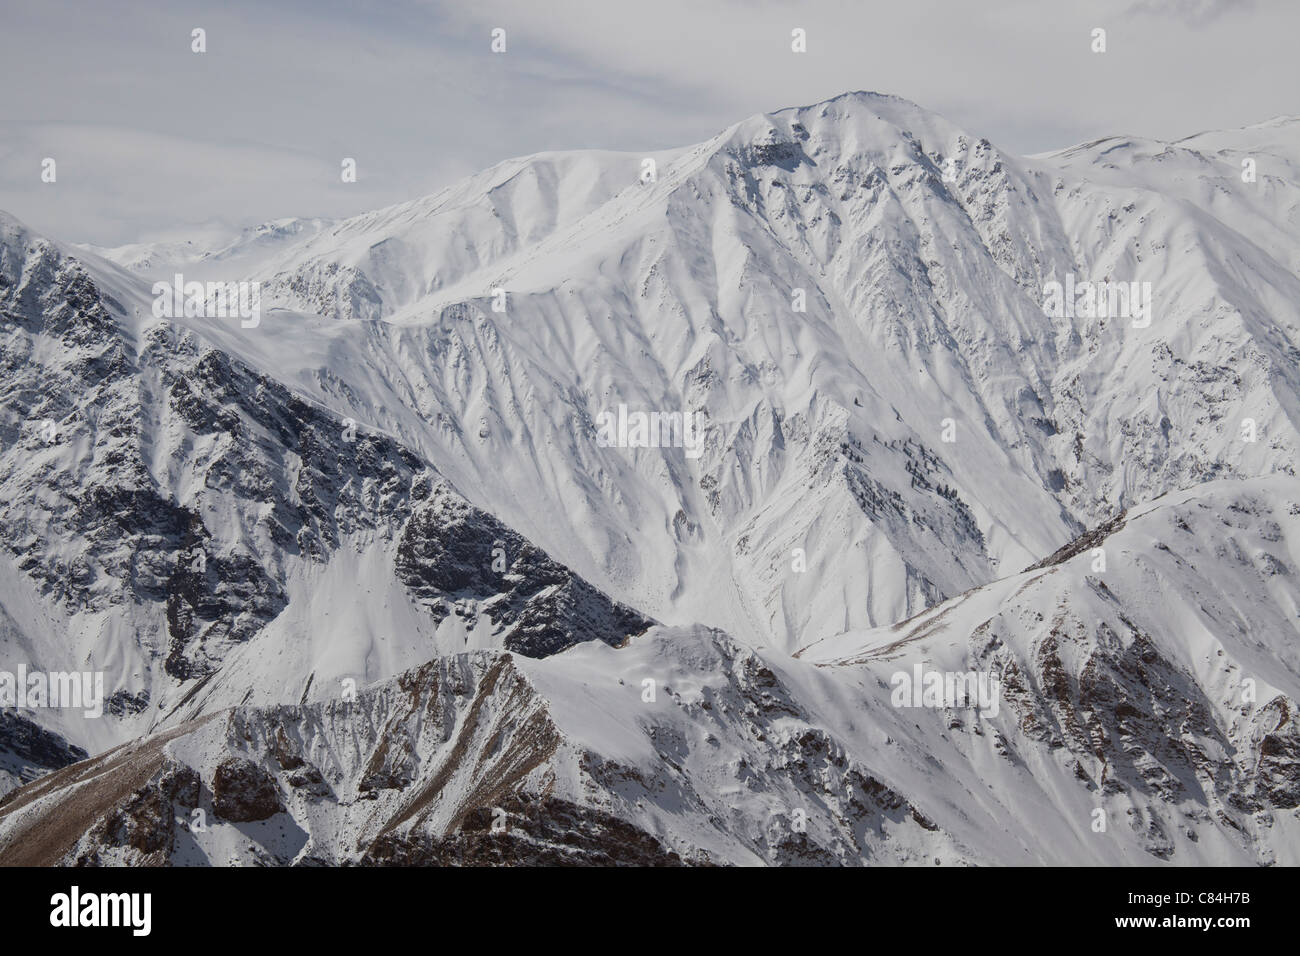 Mountain Peaks,Spiti Valley Himachal Pradesh, India - Stock Image